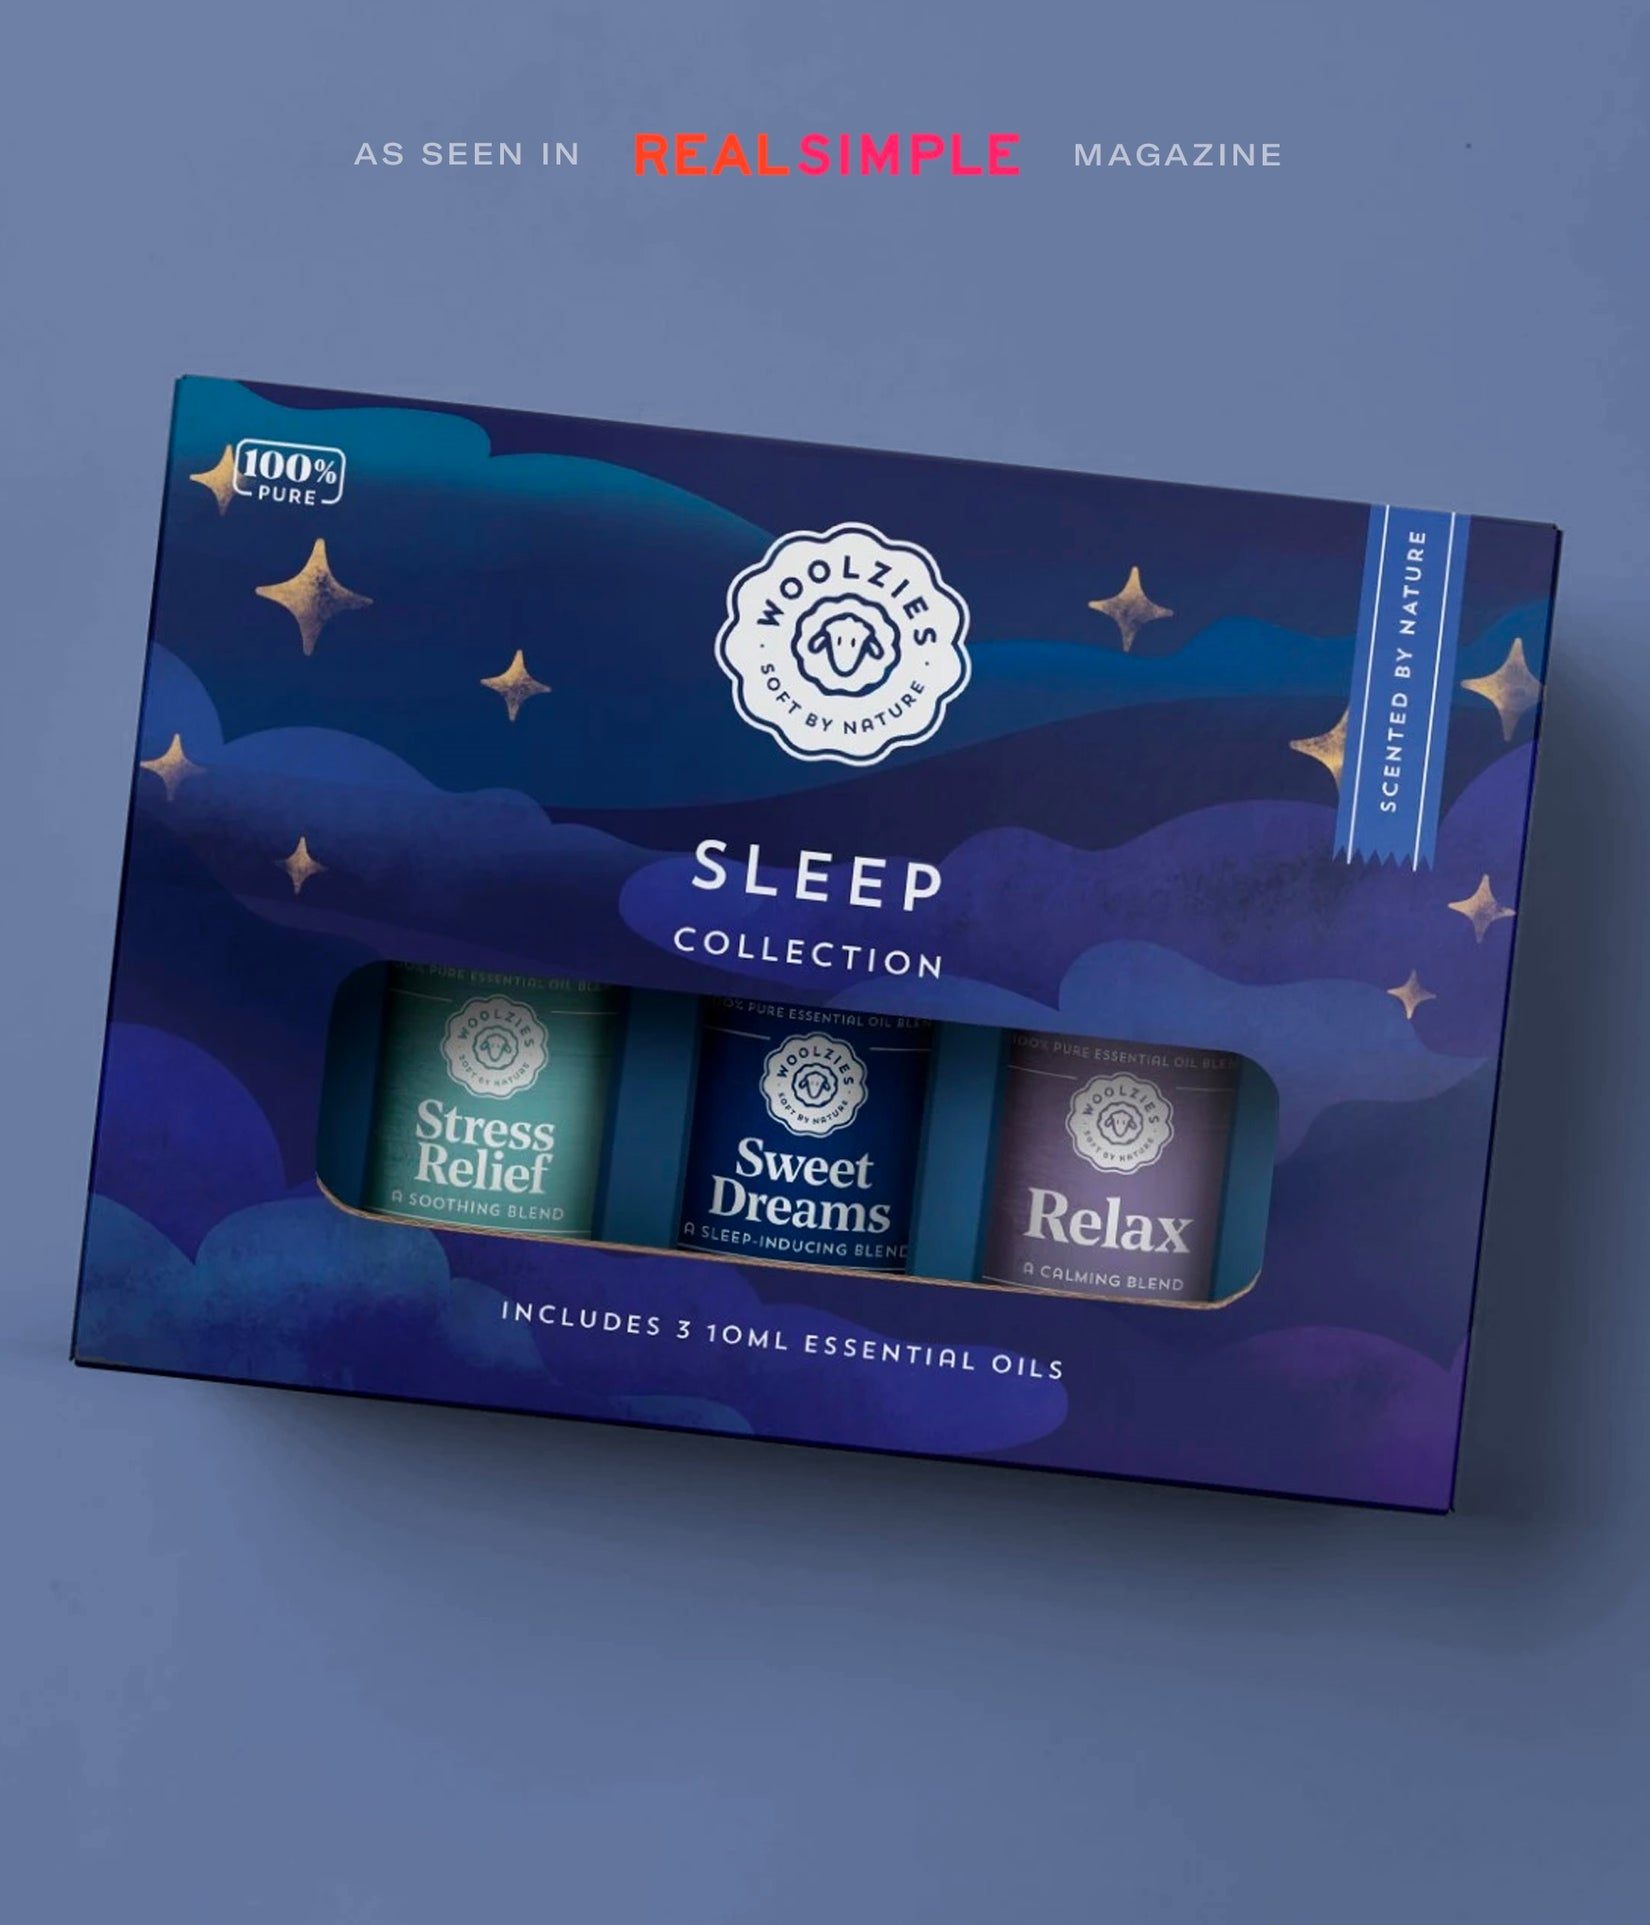 The Sleep Collection